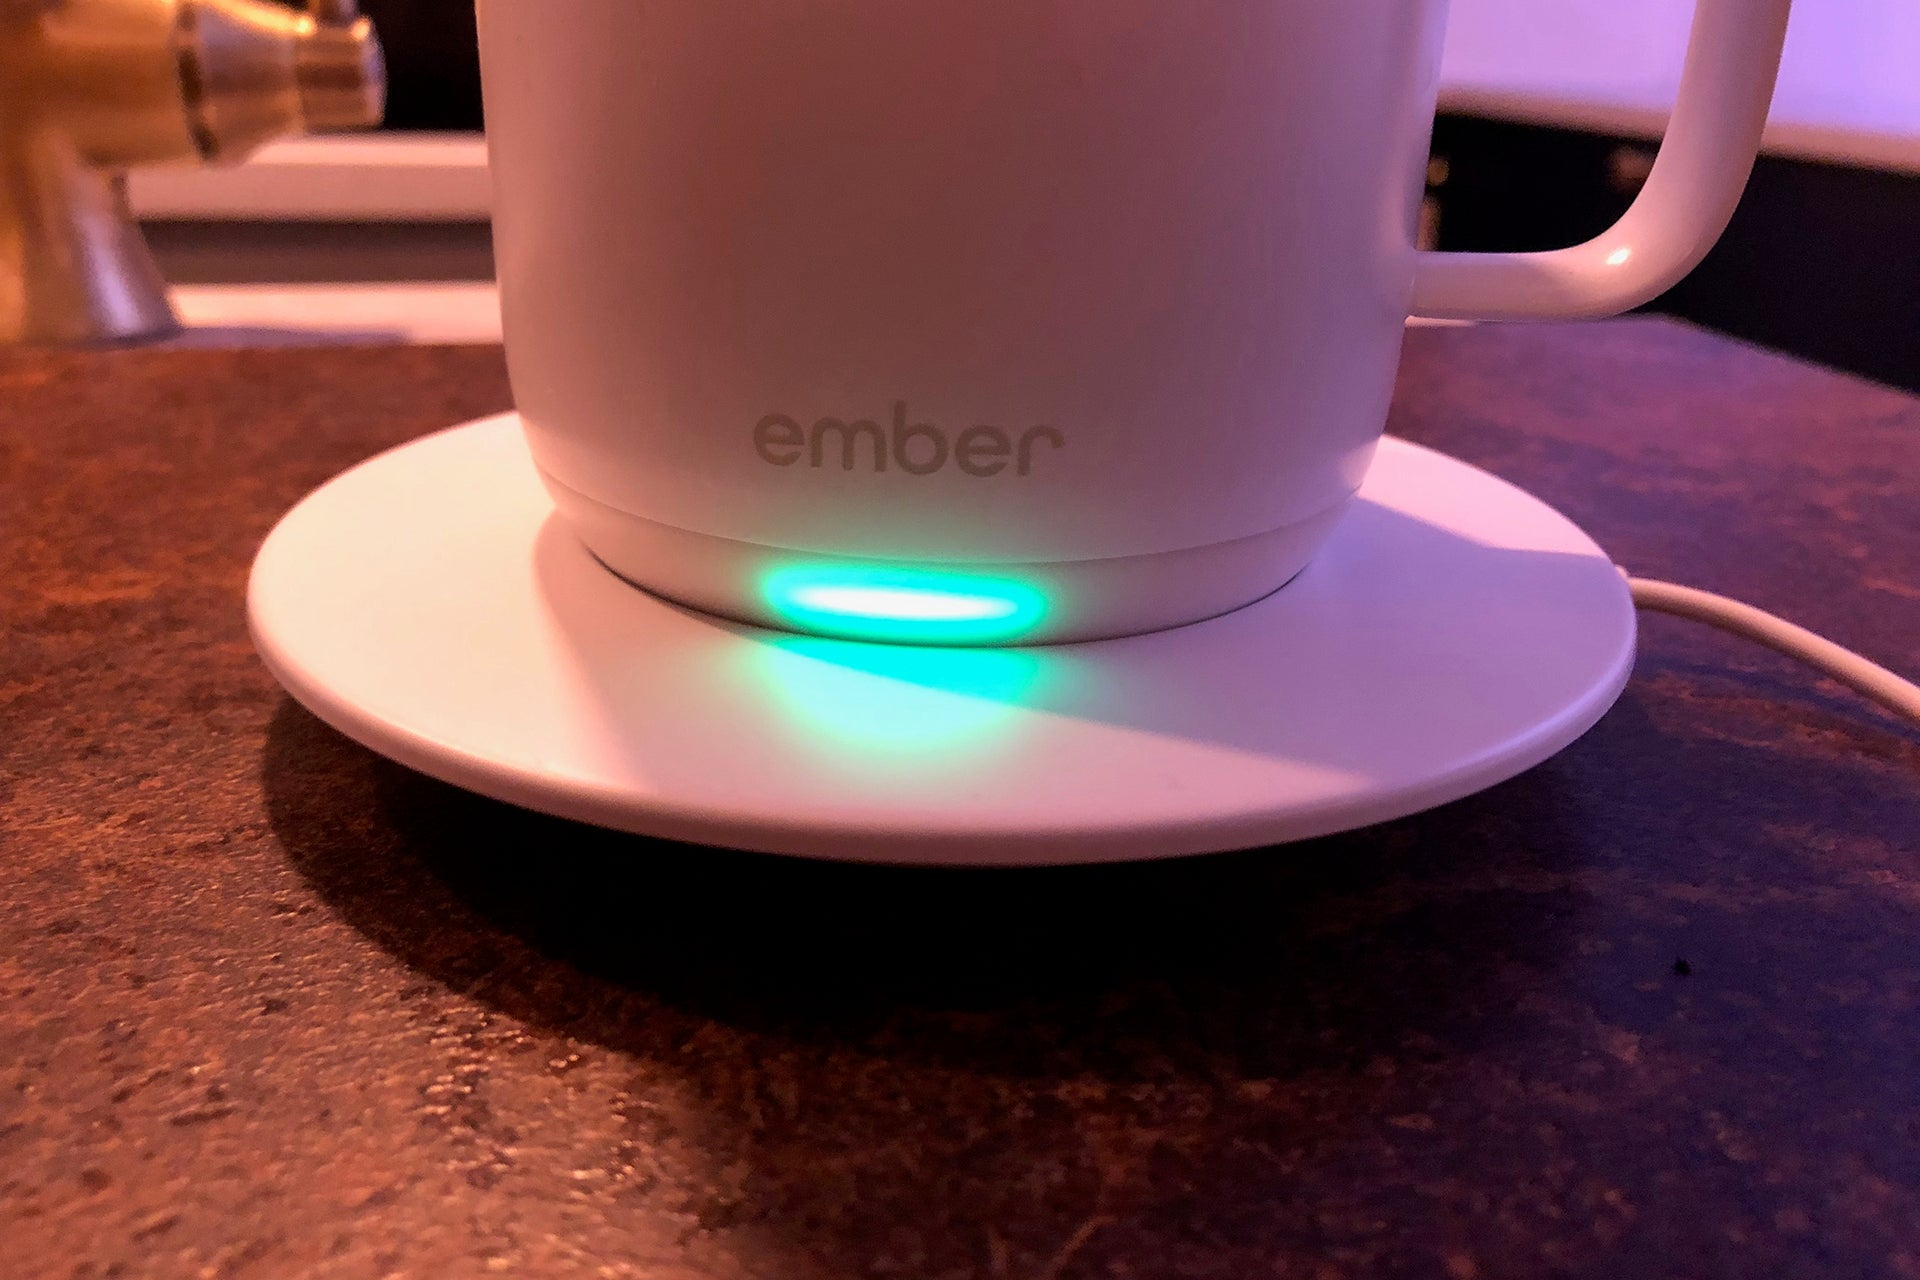 6260755c4ac Ember Ceramic Mug Review | Trusted Reviews